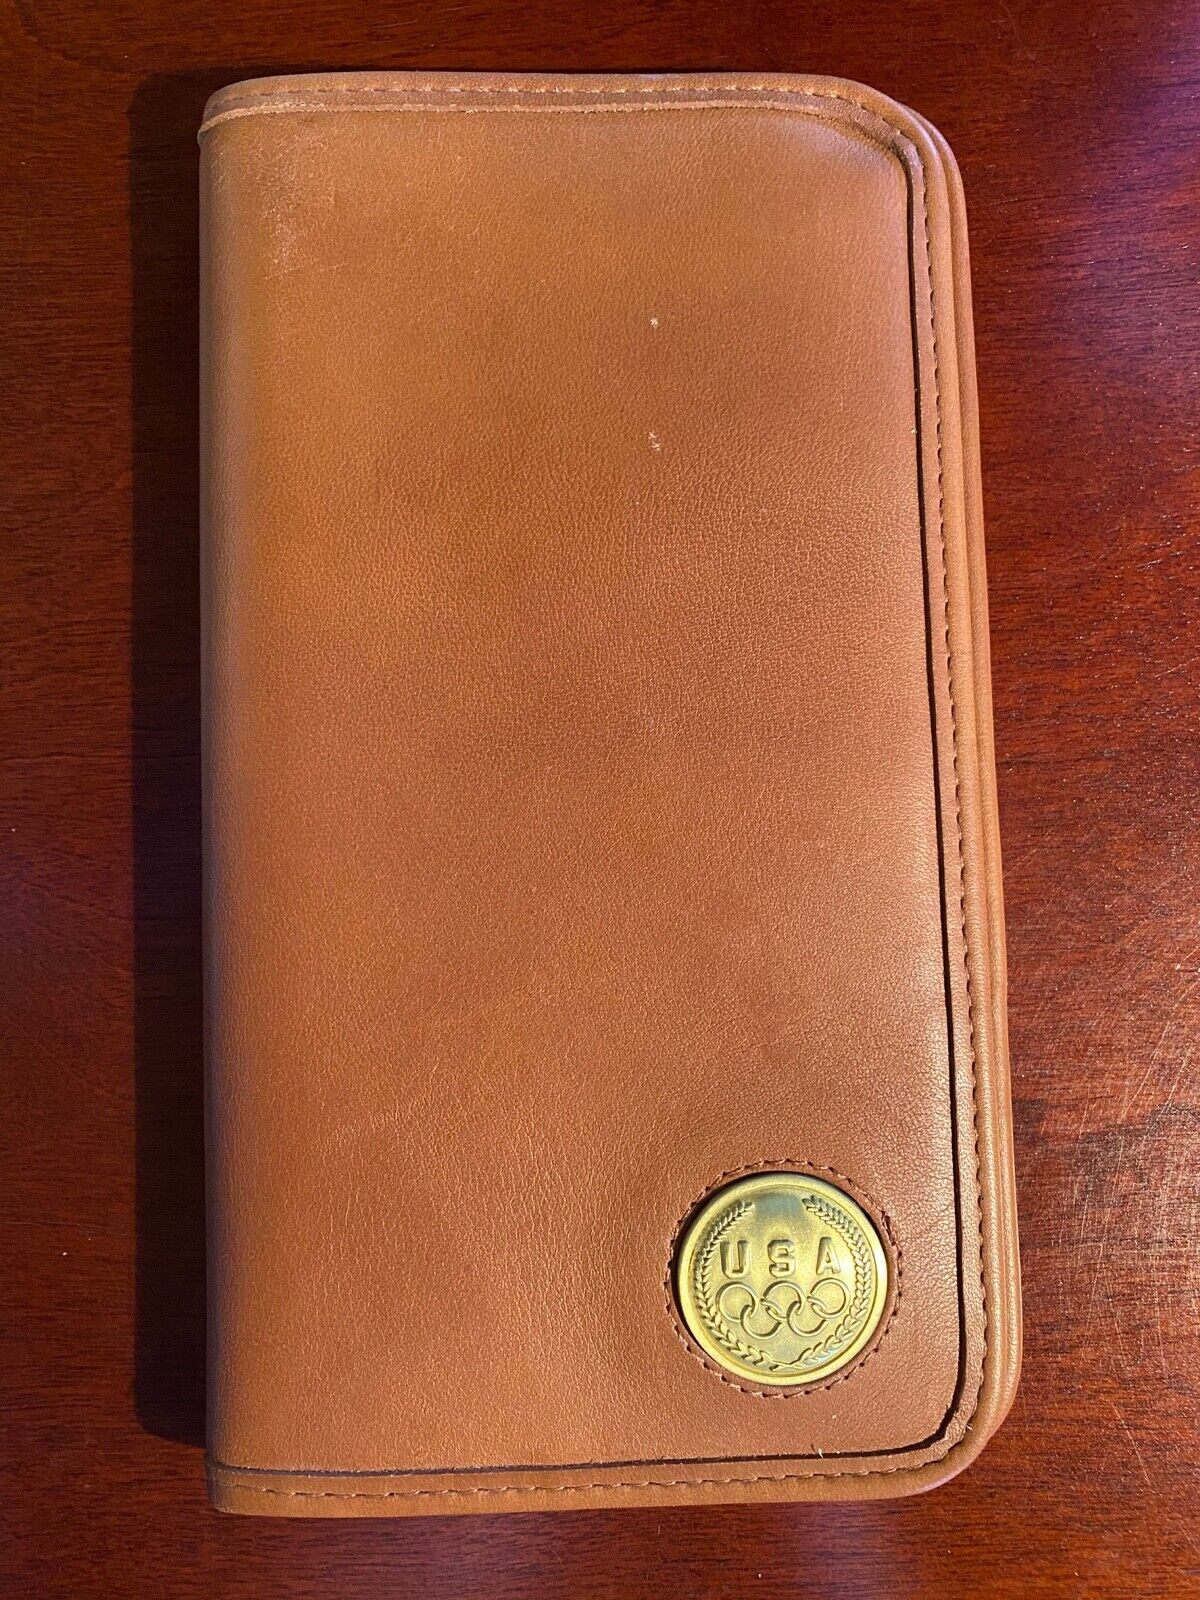 COACH Leather Travel Wallet, USA Olympic Commemorative - $40.00